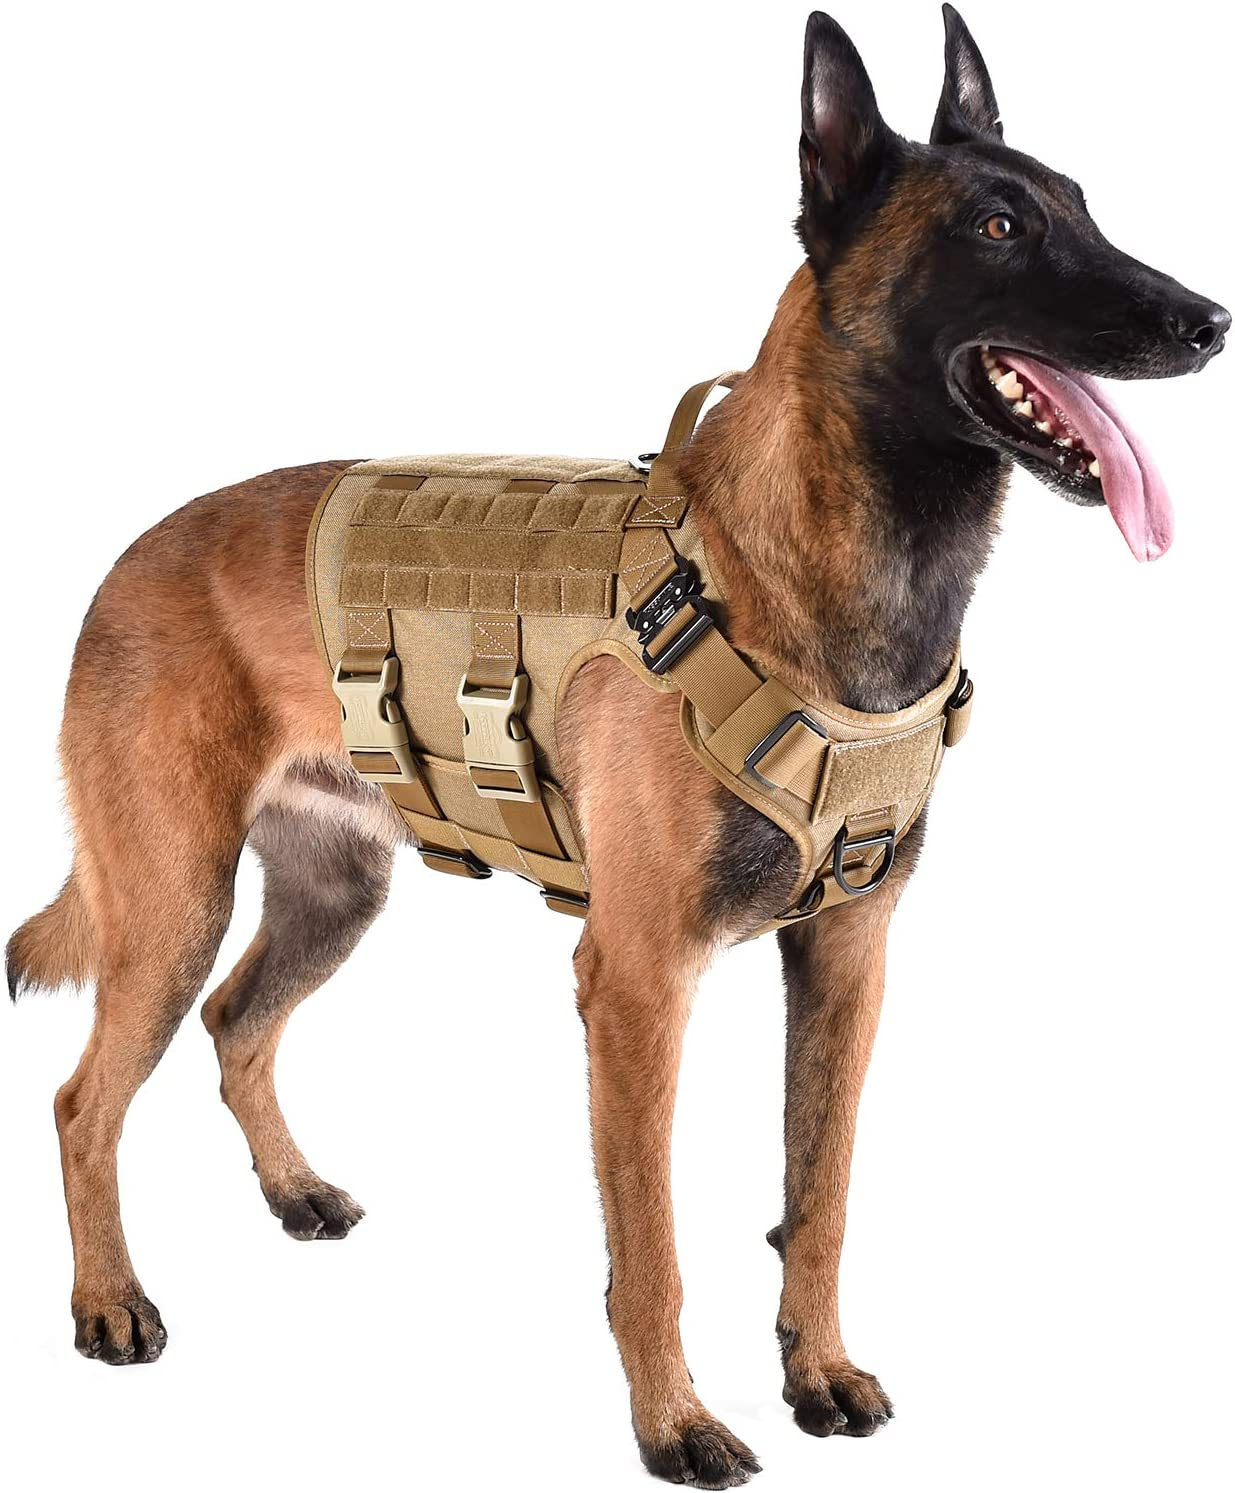 ICEFANG Tactical Dog Harness Hook and Wor Import Patch Mail order Loop Panels for